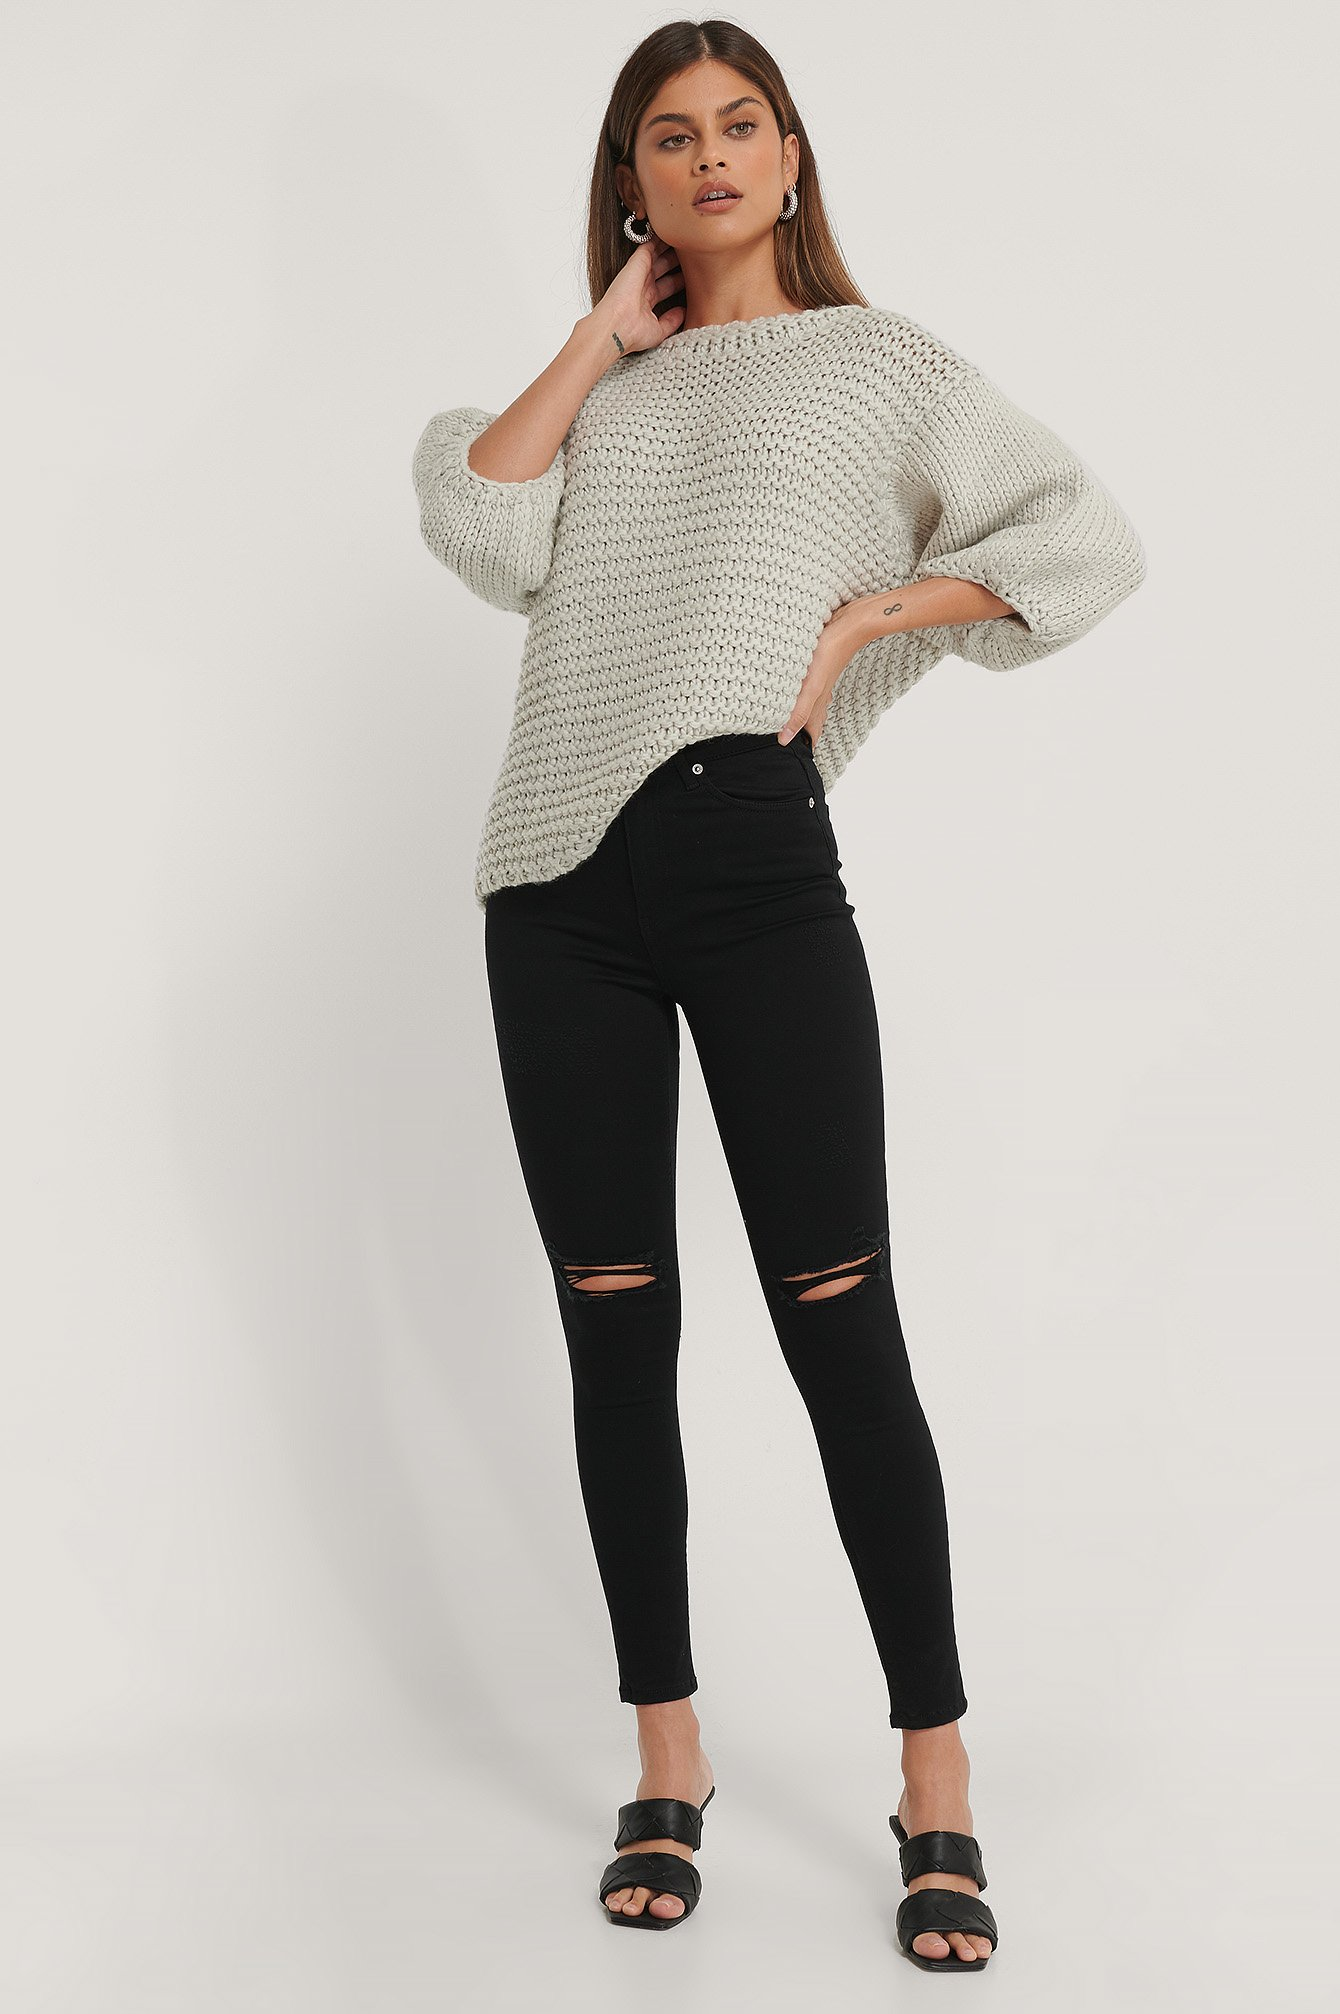 Black Organisch Skinny Jeans Mit Hoher Taille Used-Look